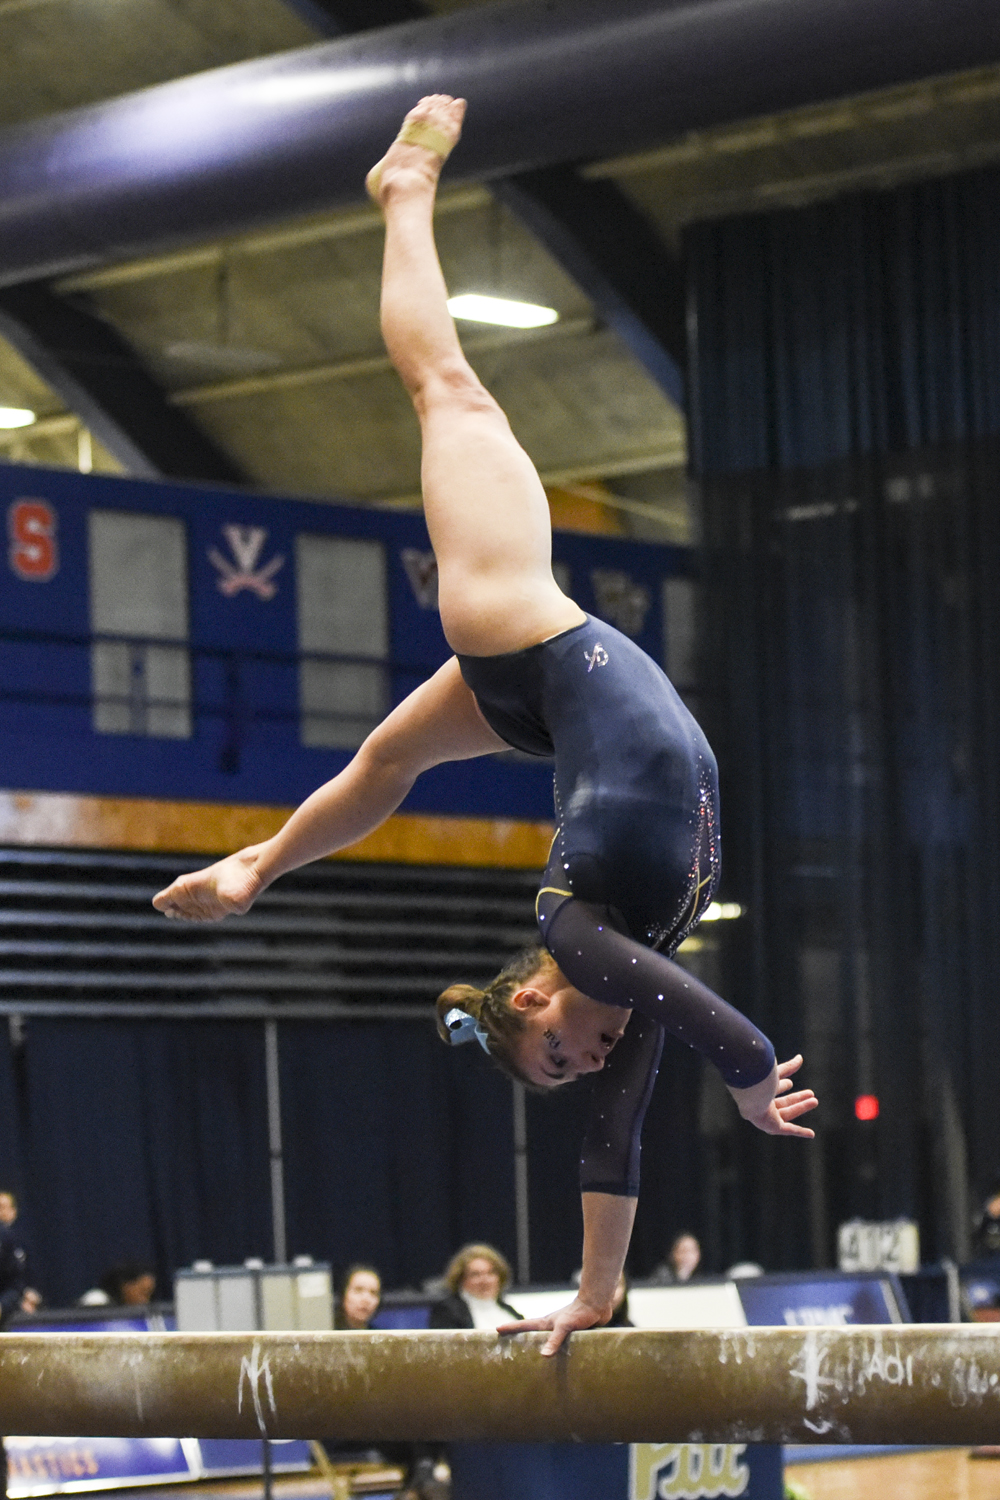 Pitt gymnastics narrowly beat George Washington University winning 195.175 to 194.625 on Saturday afternoon.